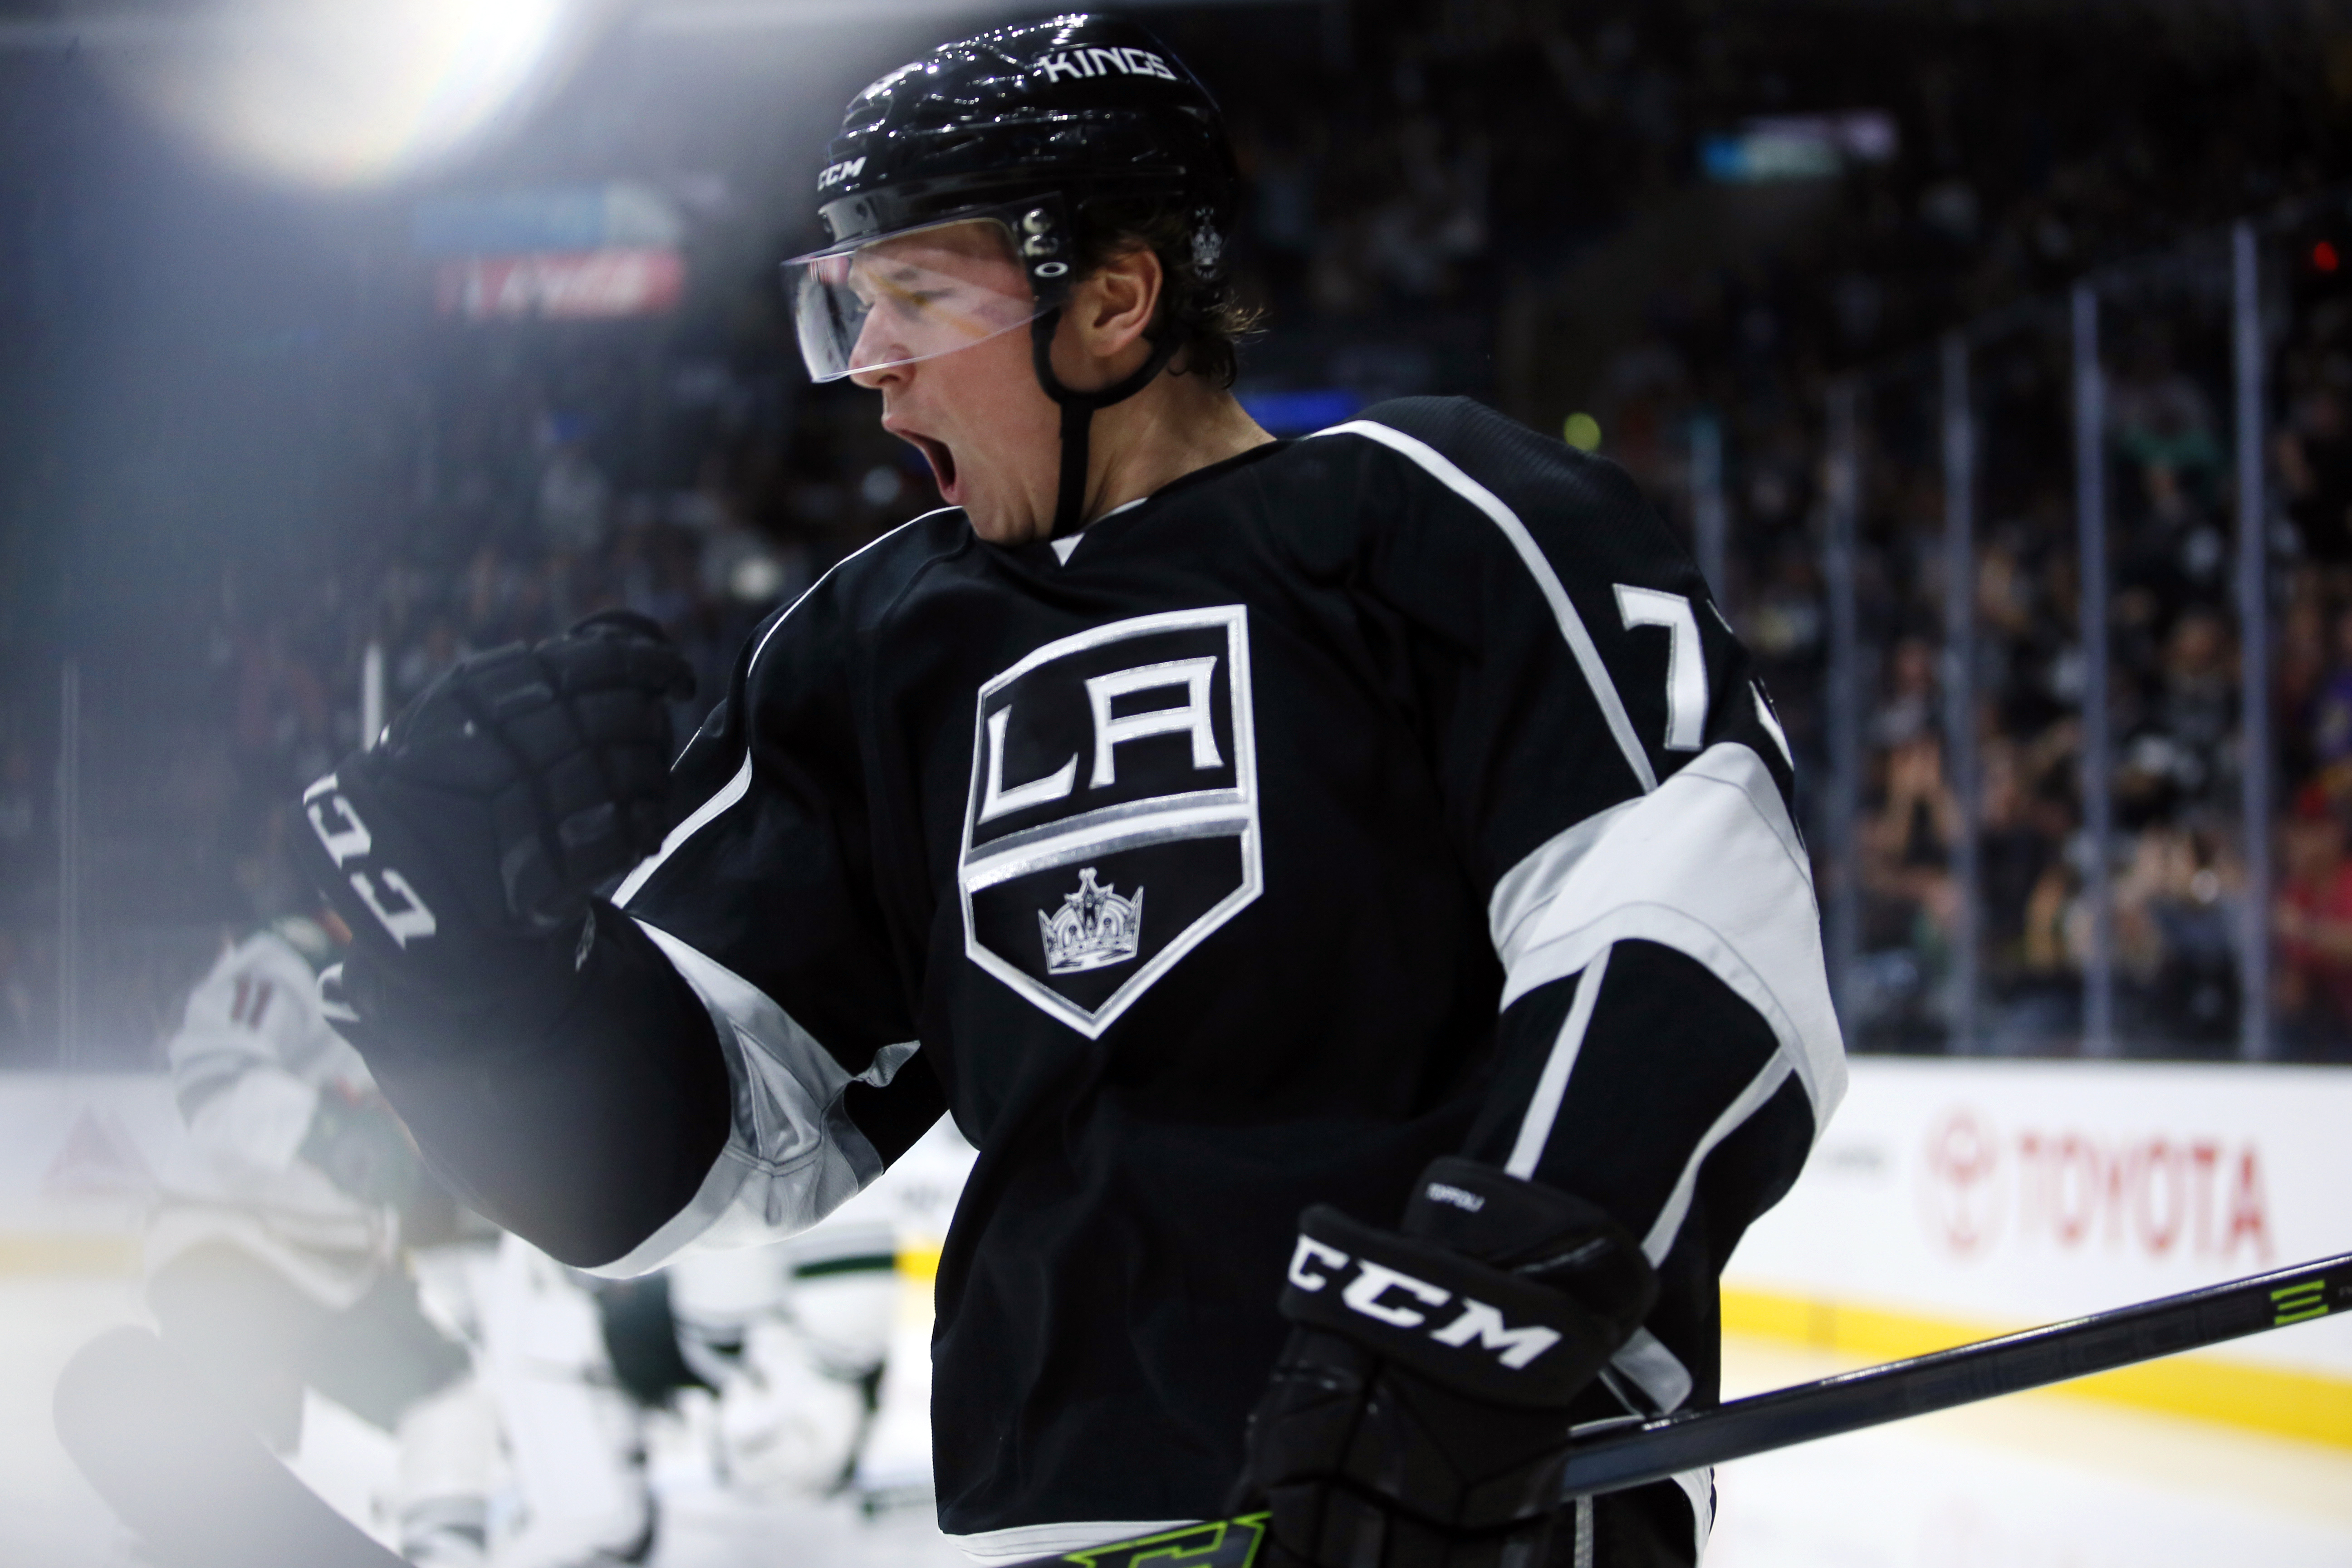 Los Angeles Kings center Tyler Toffoli celebrates his power play goal against the Minnesota Wild during the second period of an NHL hockey game, Friday, Oct. 16, 2015, in Los Angeles. (AP Photo/Danny Moloshok)